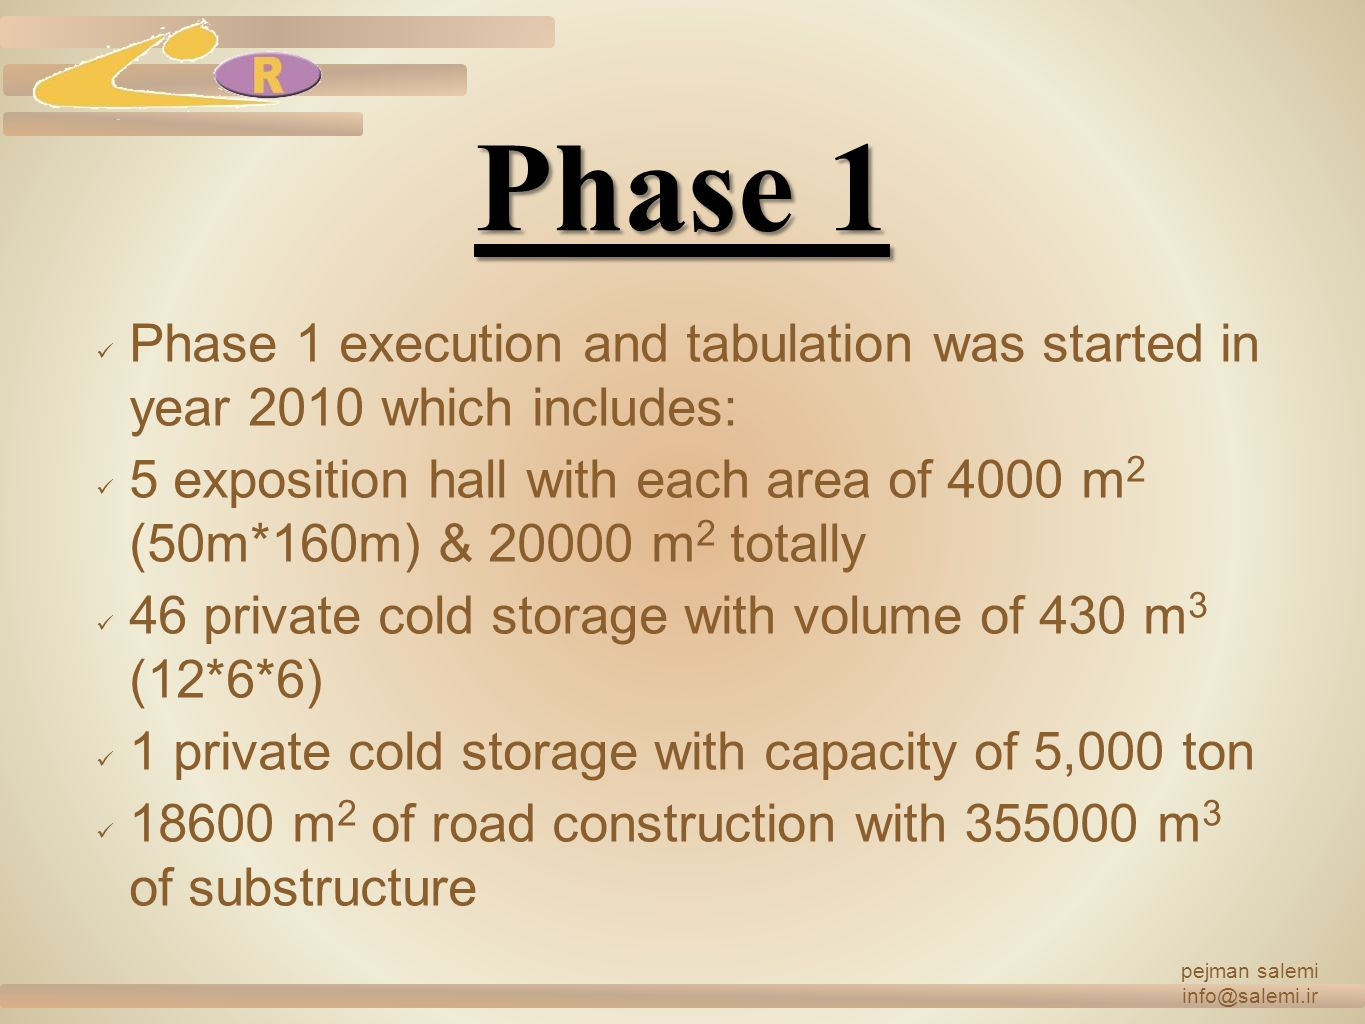 Phase 1 Phase 1 execution and tabulation was started in year 2010 which includes: 5 exposition hall with each area of 4000 m 2 (50m*160m) & 20000 m 2 totally 46 private cold storage with volume of 430 m 3 (12*6*6) 1 private cold storage with capacity of 5,000 ton 18600 m 2 of road construction with 355000 m 3 of substructure pejman salemi info@salemi.ir